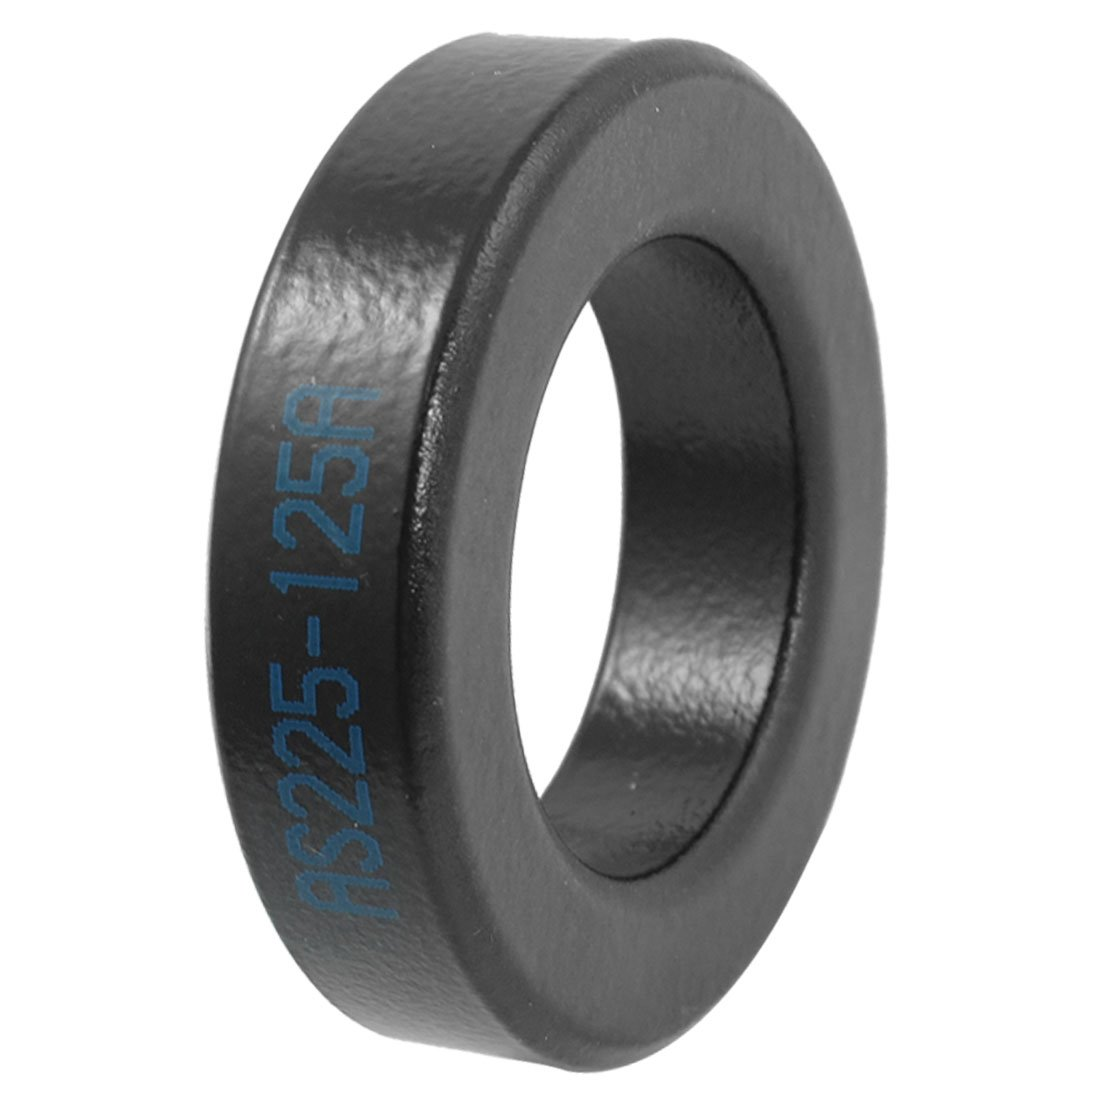 uxcell AS225-125A Ferrite Rings Iron Toroid Cores Black for Power Inductor